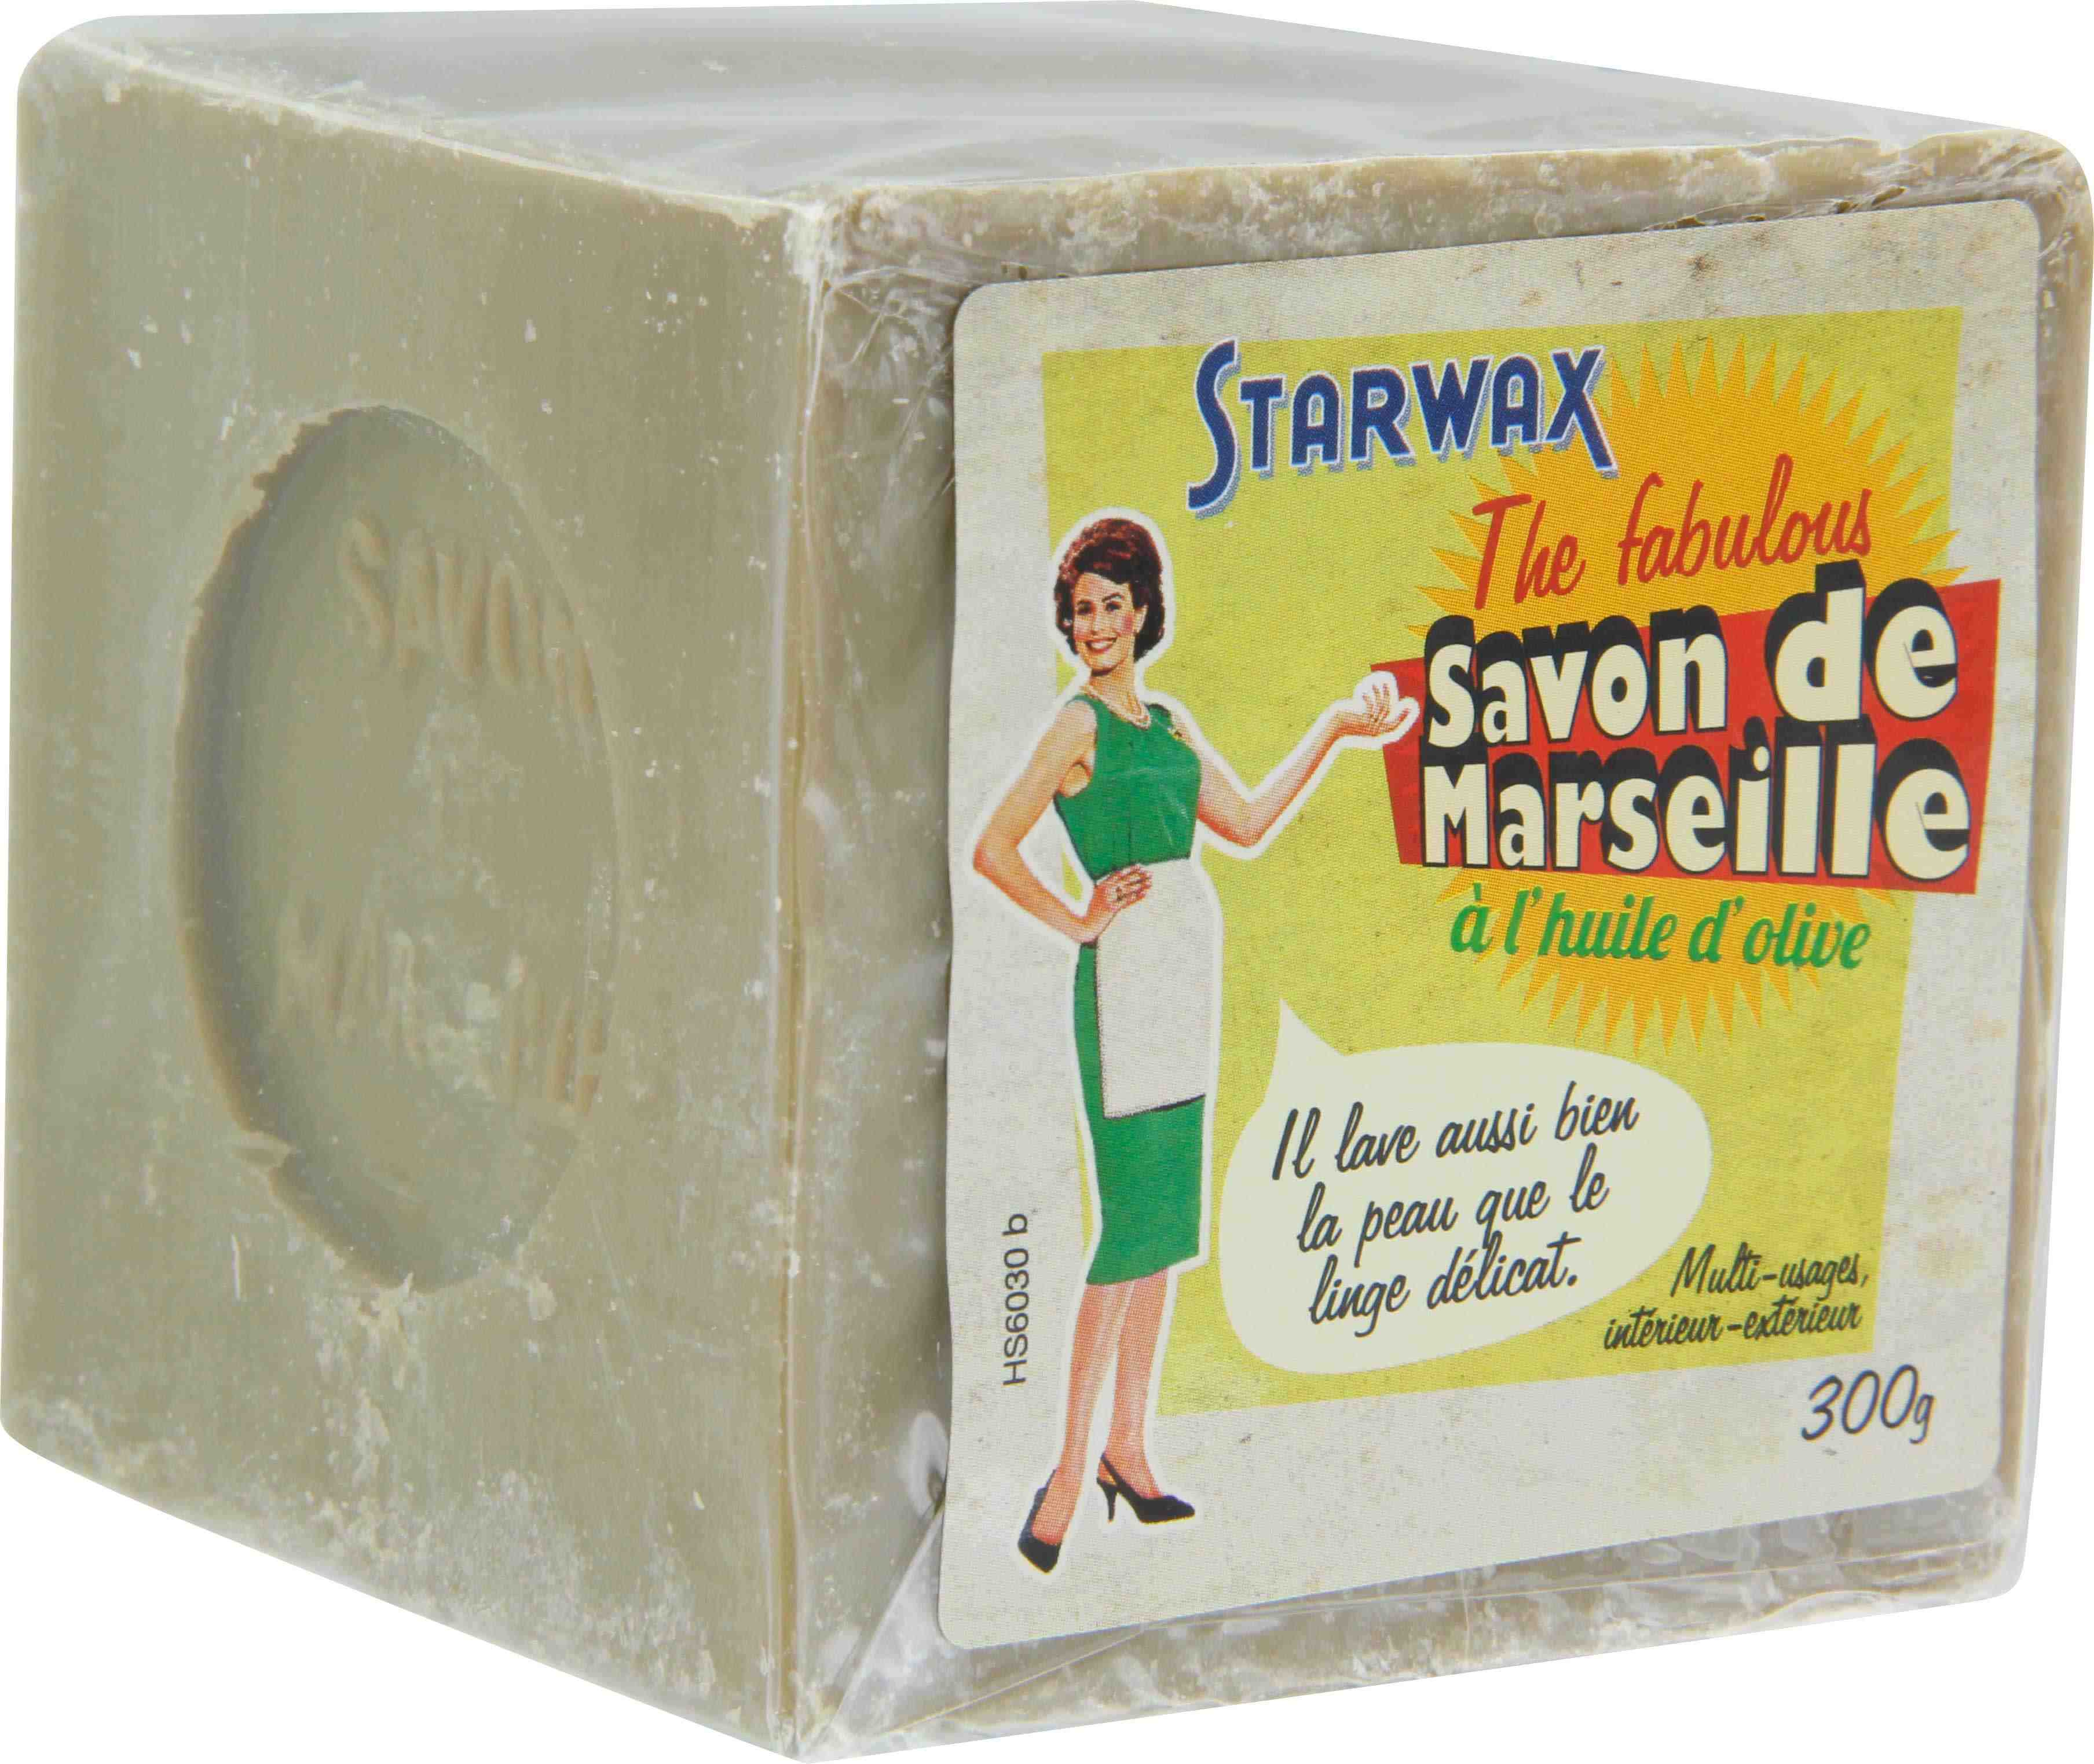 Savon de Marseille Starwax The Fabulous